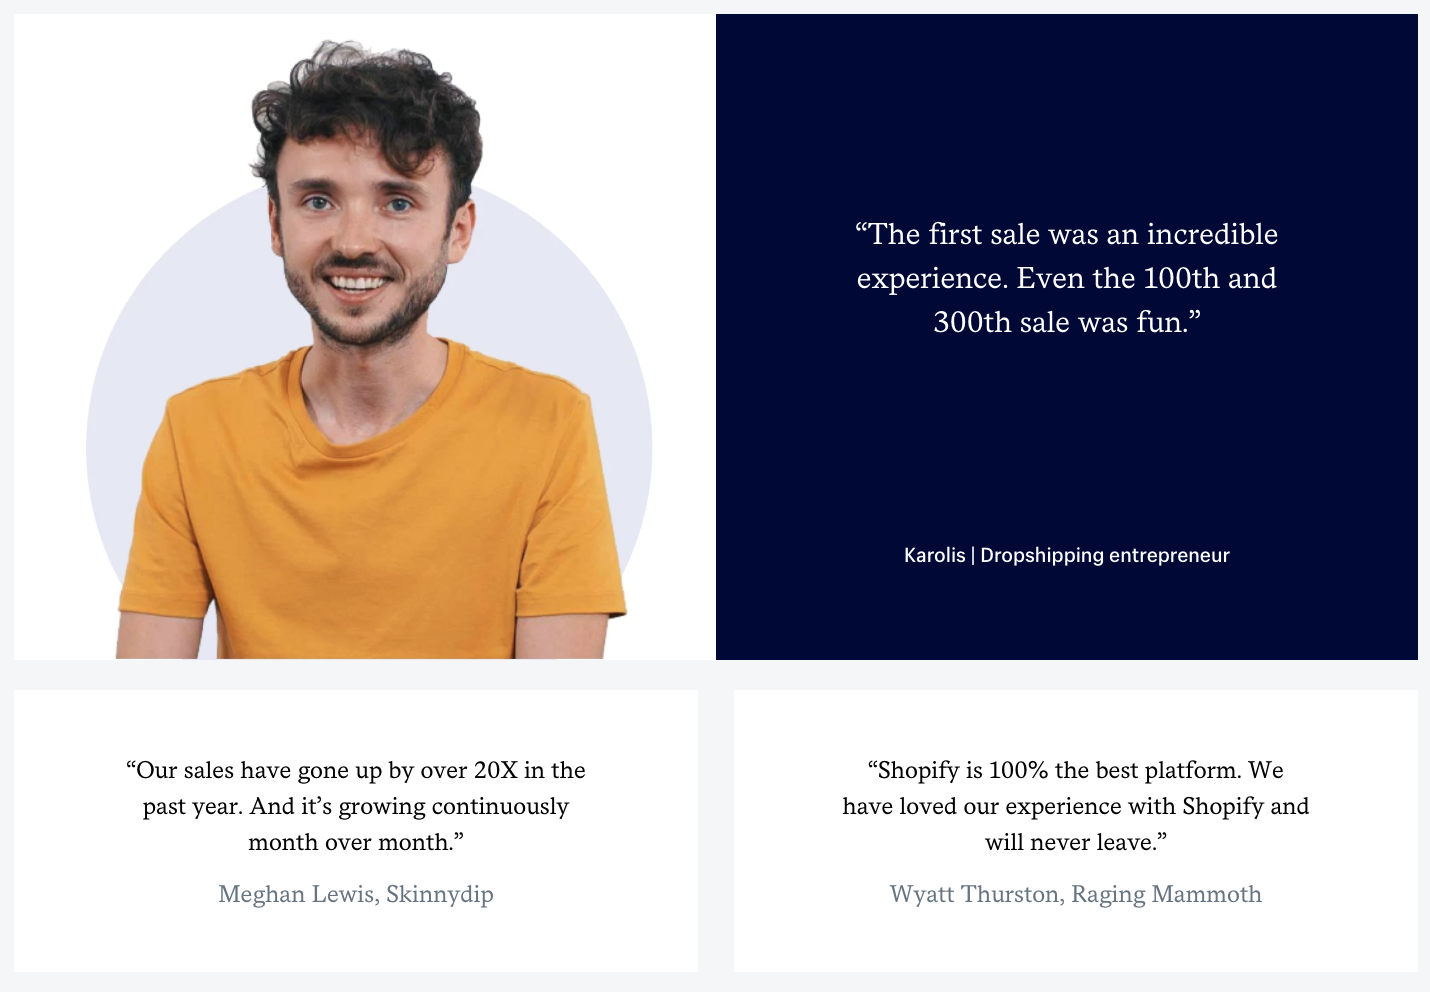 Shopify shows B2B testimonials from entrepreneurs and business owners.